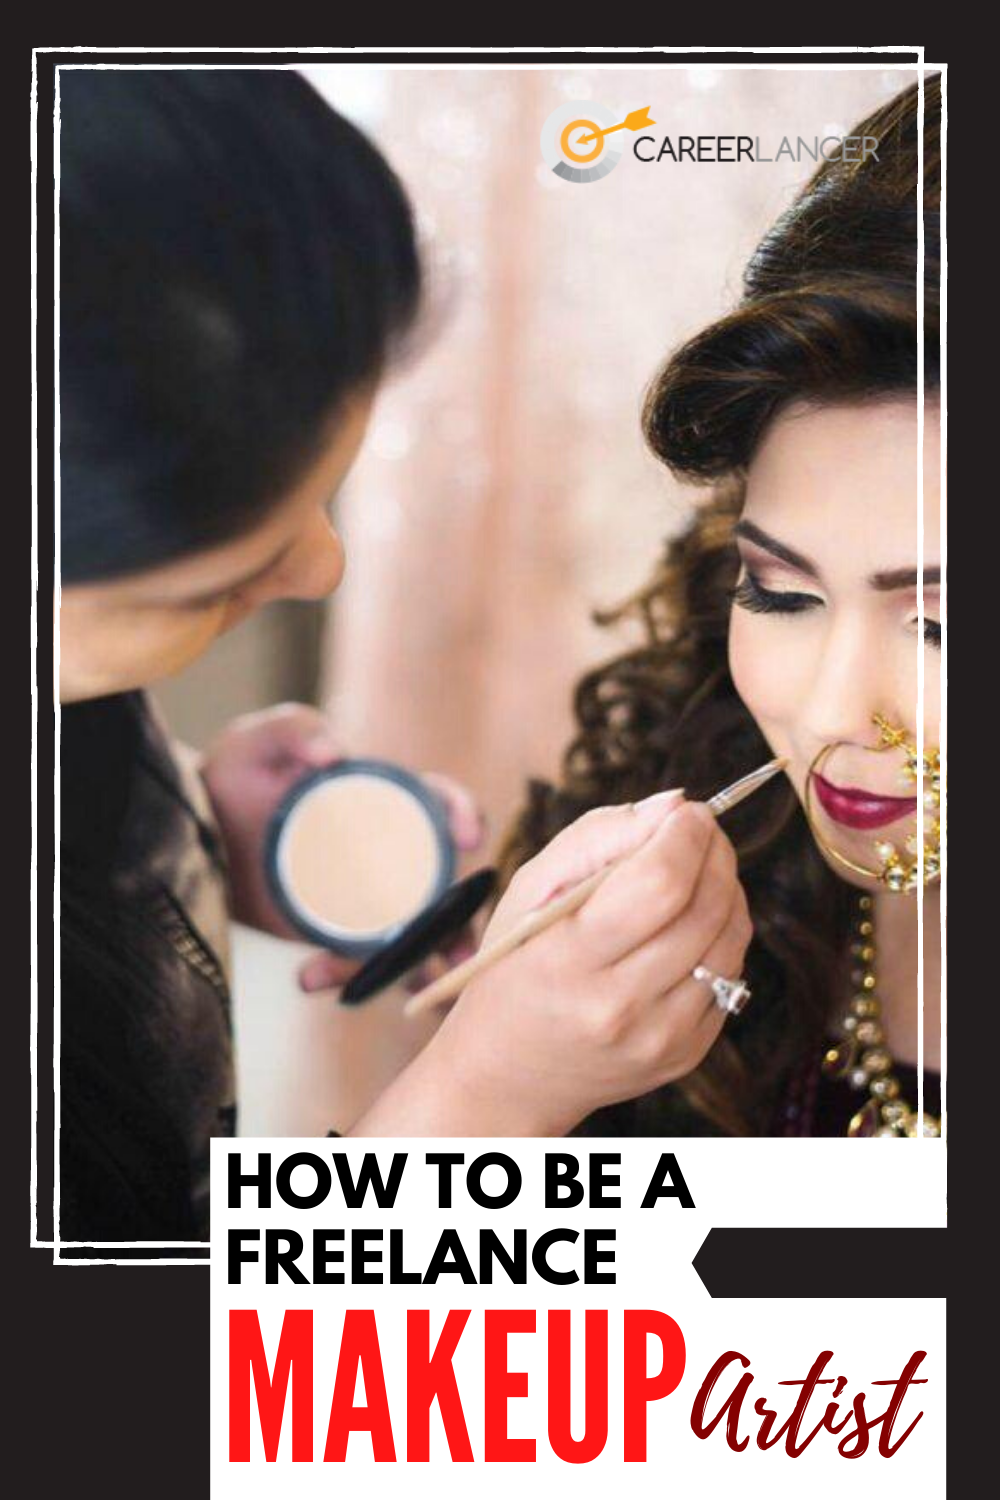 How To Be A Freelance Makeup Artist - Careerlancer